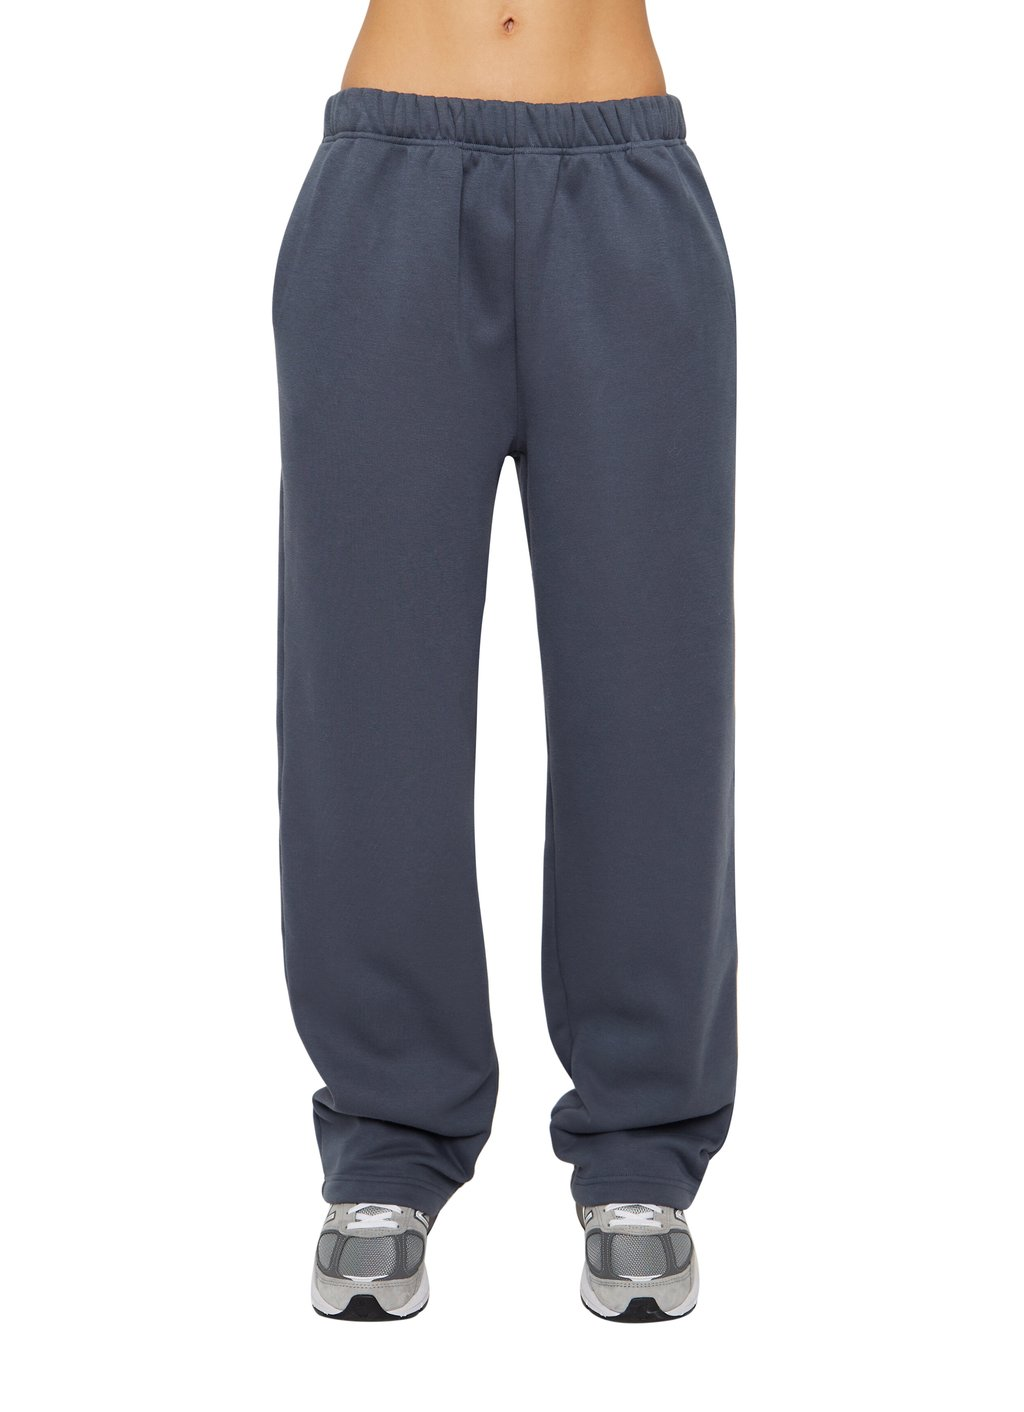 Flared Sweatpants by Danielle Guizio, available on danielleguiziony.com for $158 Bella Hadid Pants Exact Product